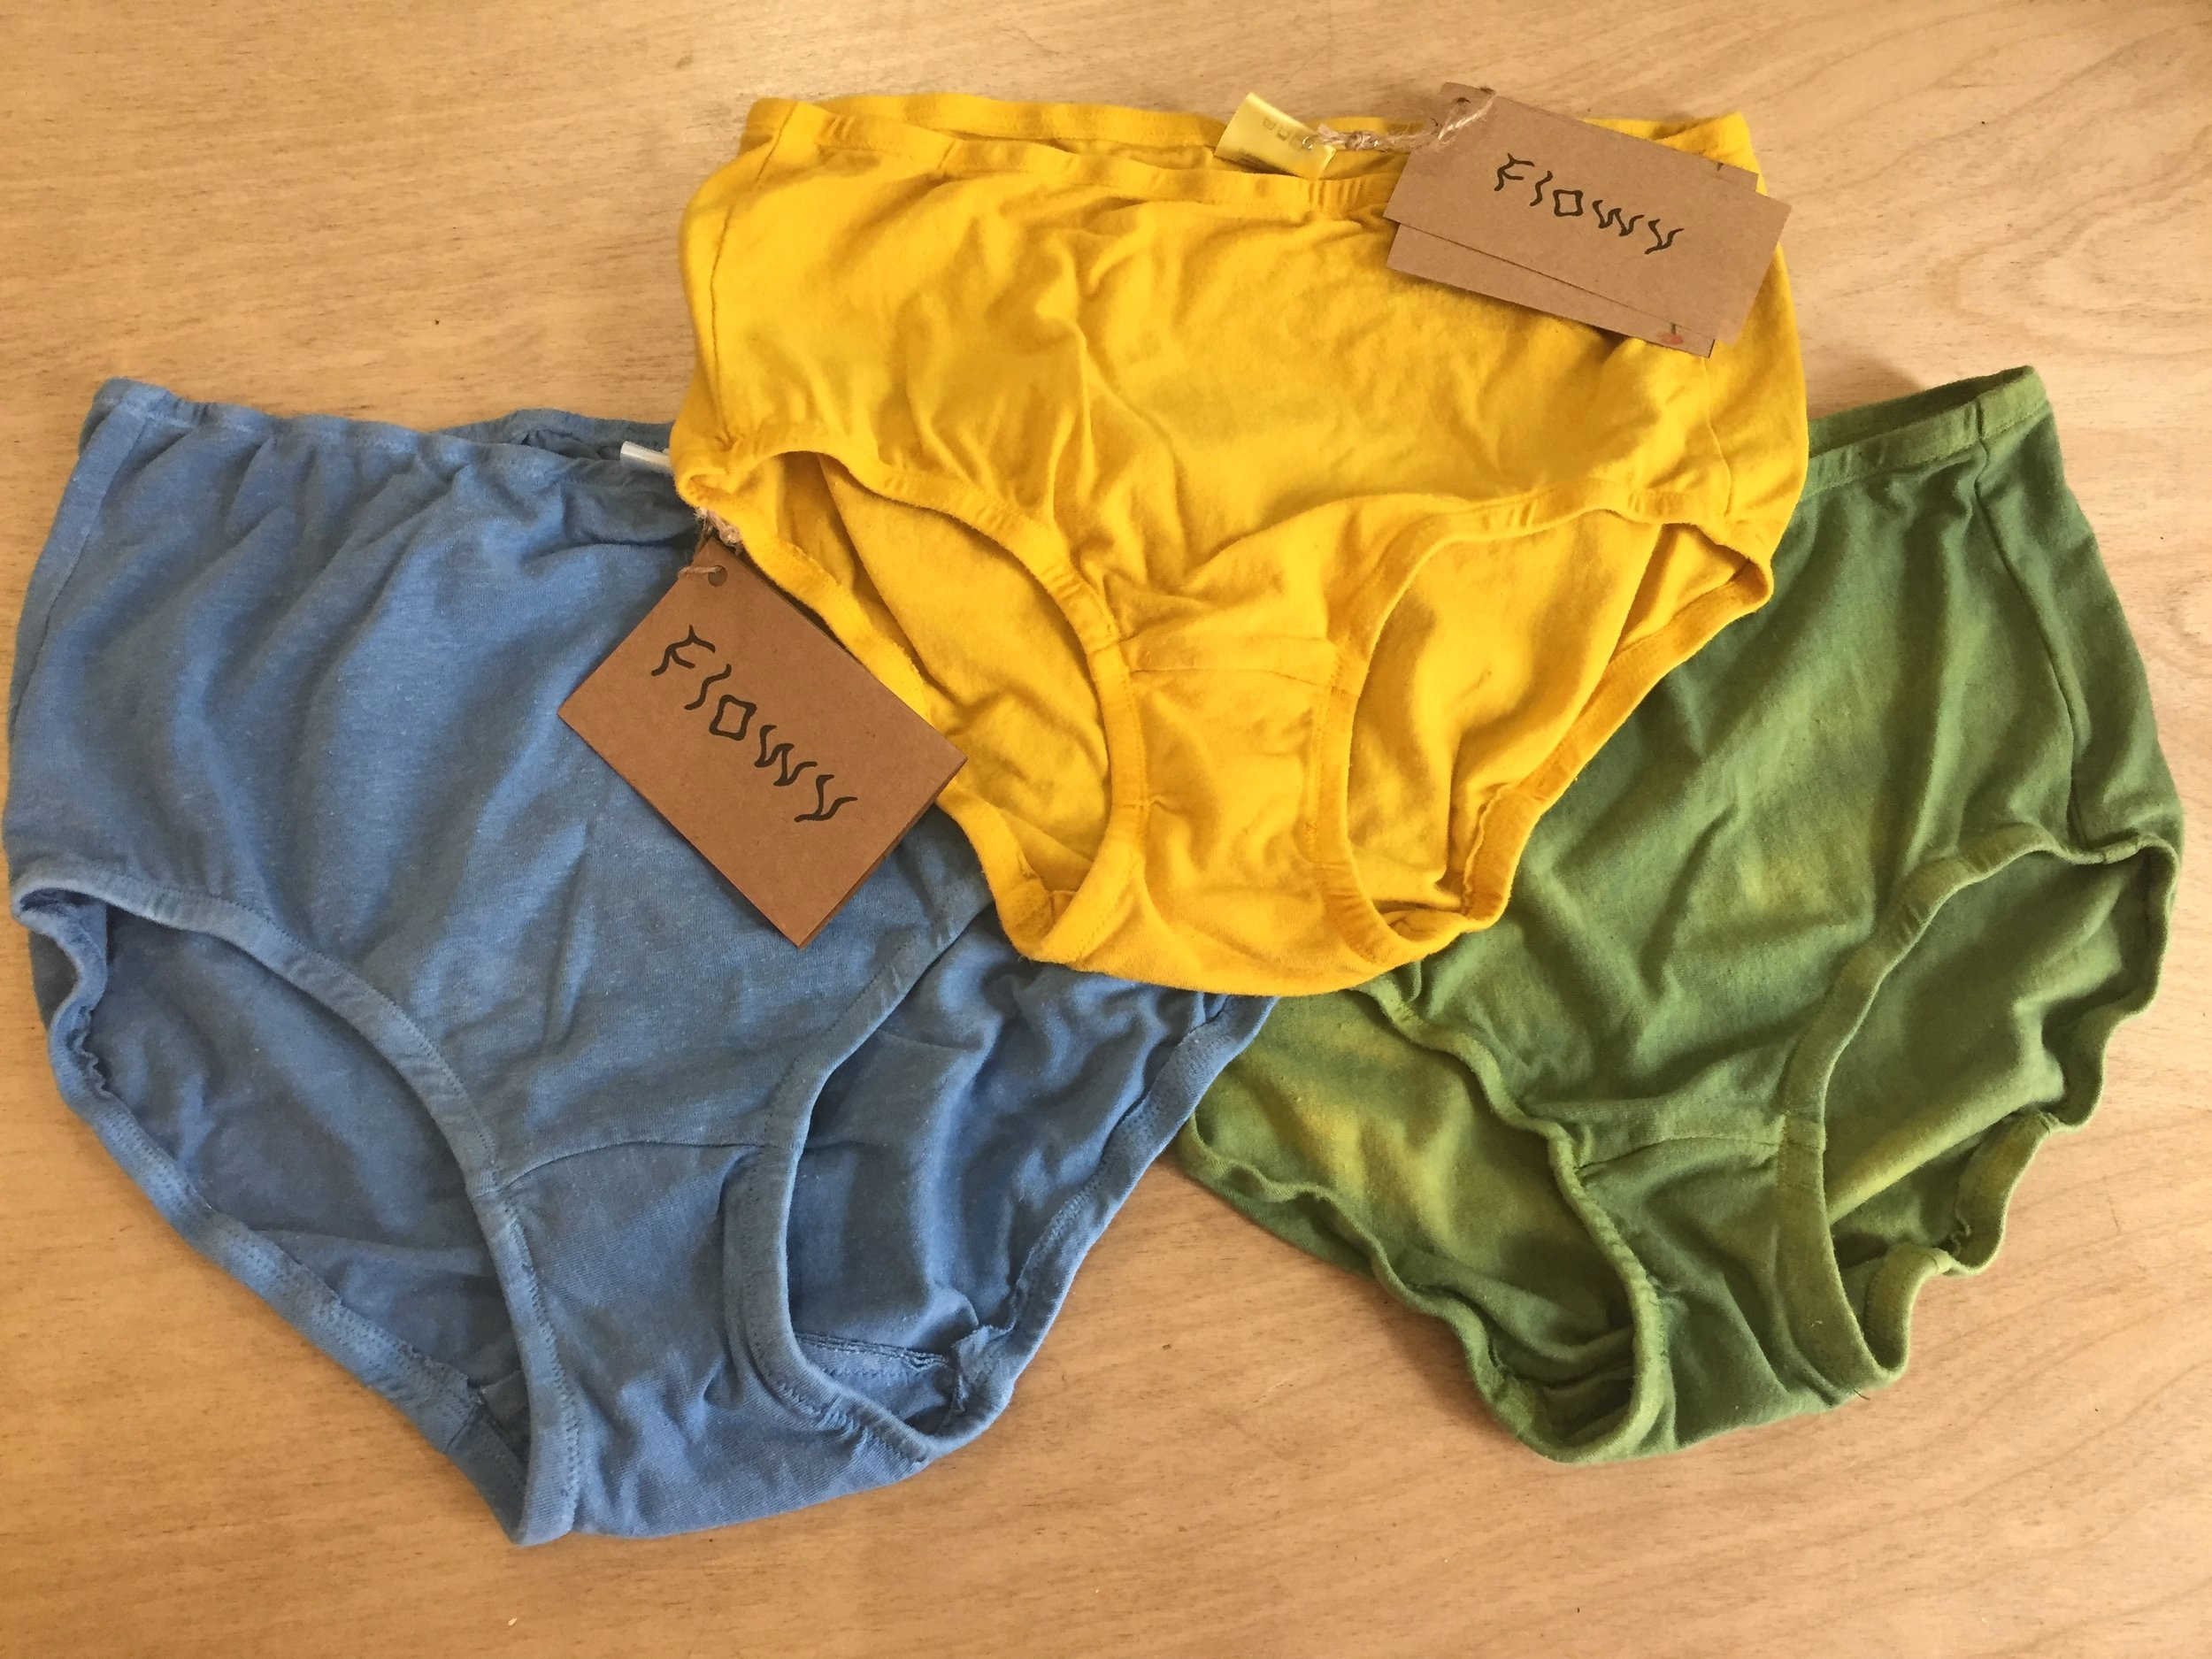 Forget your thong. Grab some high-waisted underwear handmade from all-natural materials and all-natural dyes by Baltimore brand  Flowy .